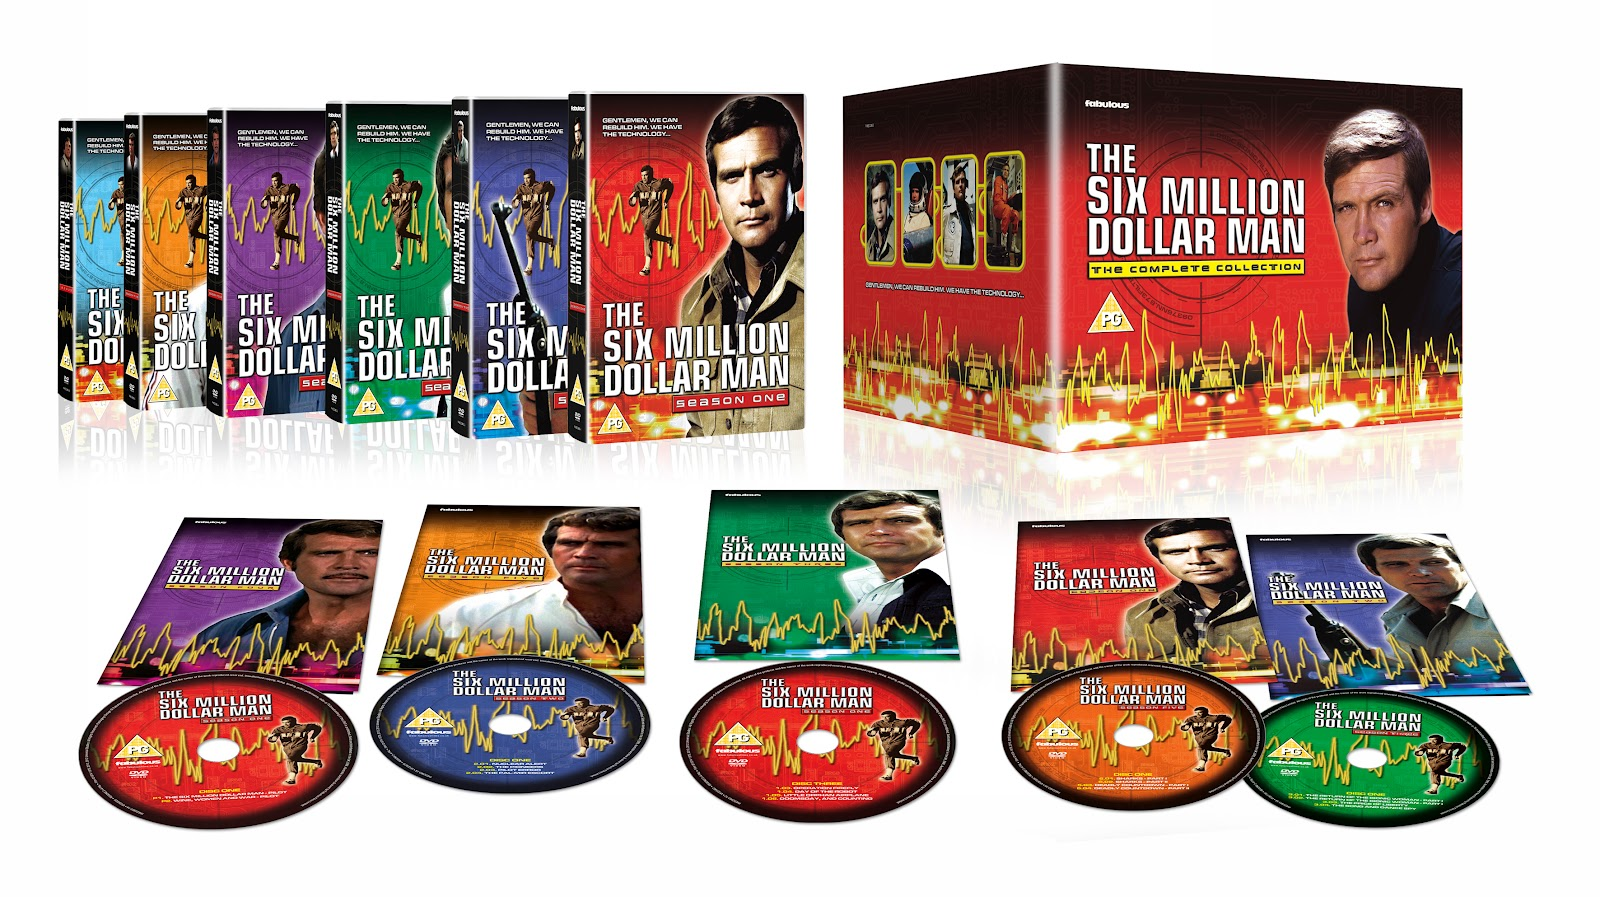 http://3.bp.blogspot.com/-VqoY6h8Ukms/T3uXPVvf5oI/AAAAAAAACE8/OreIxKKIQaE/s1600/The+Six+Million+Dollar+Man.+Complete+series+UK+DVD+pack+shot..jpg